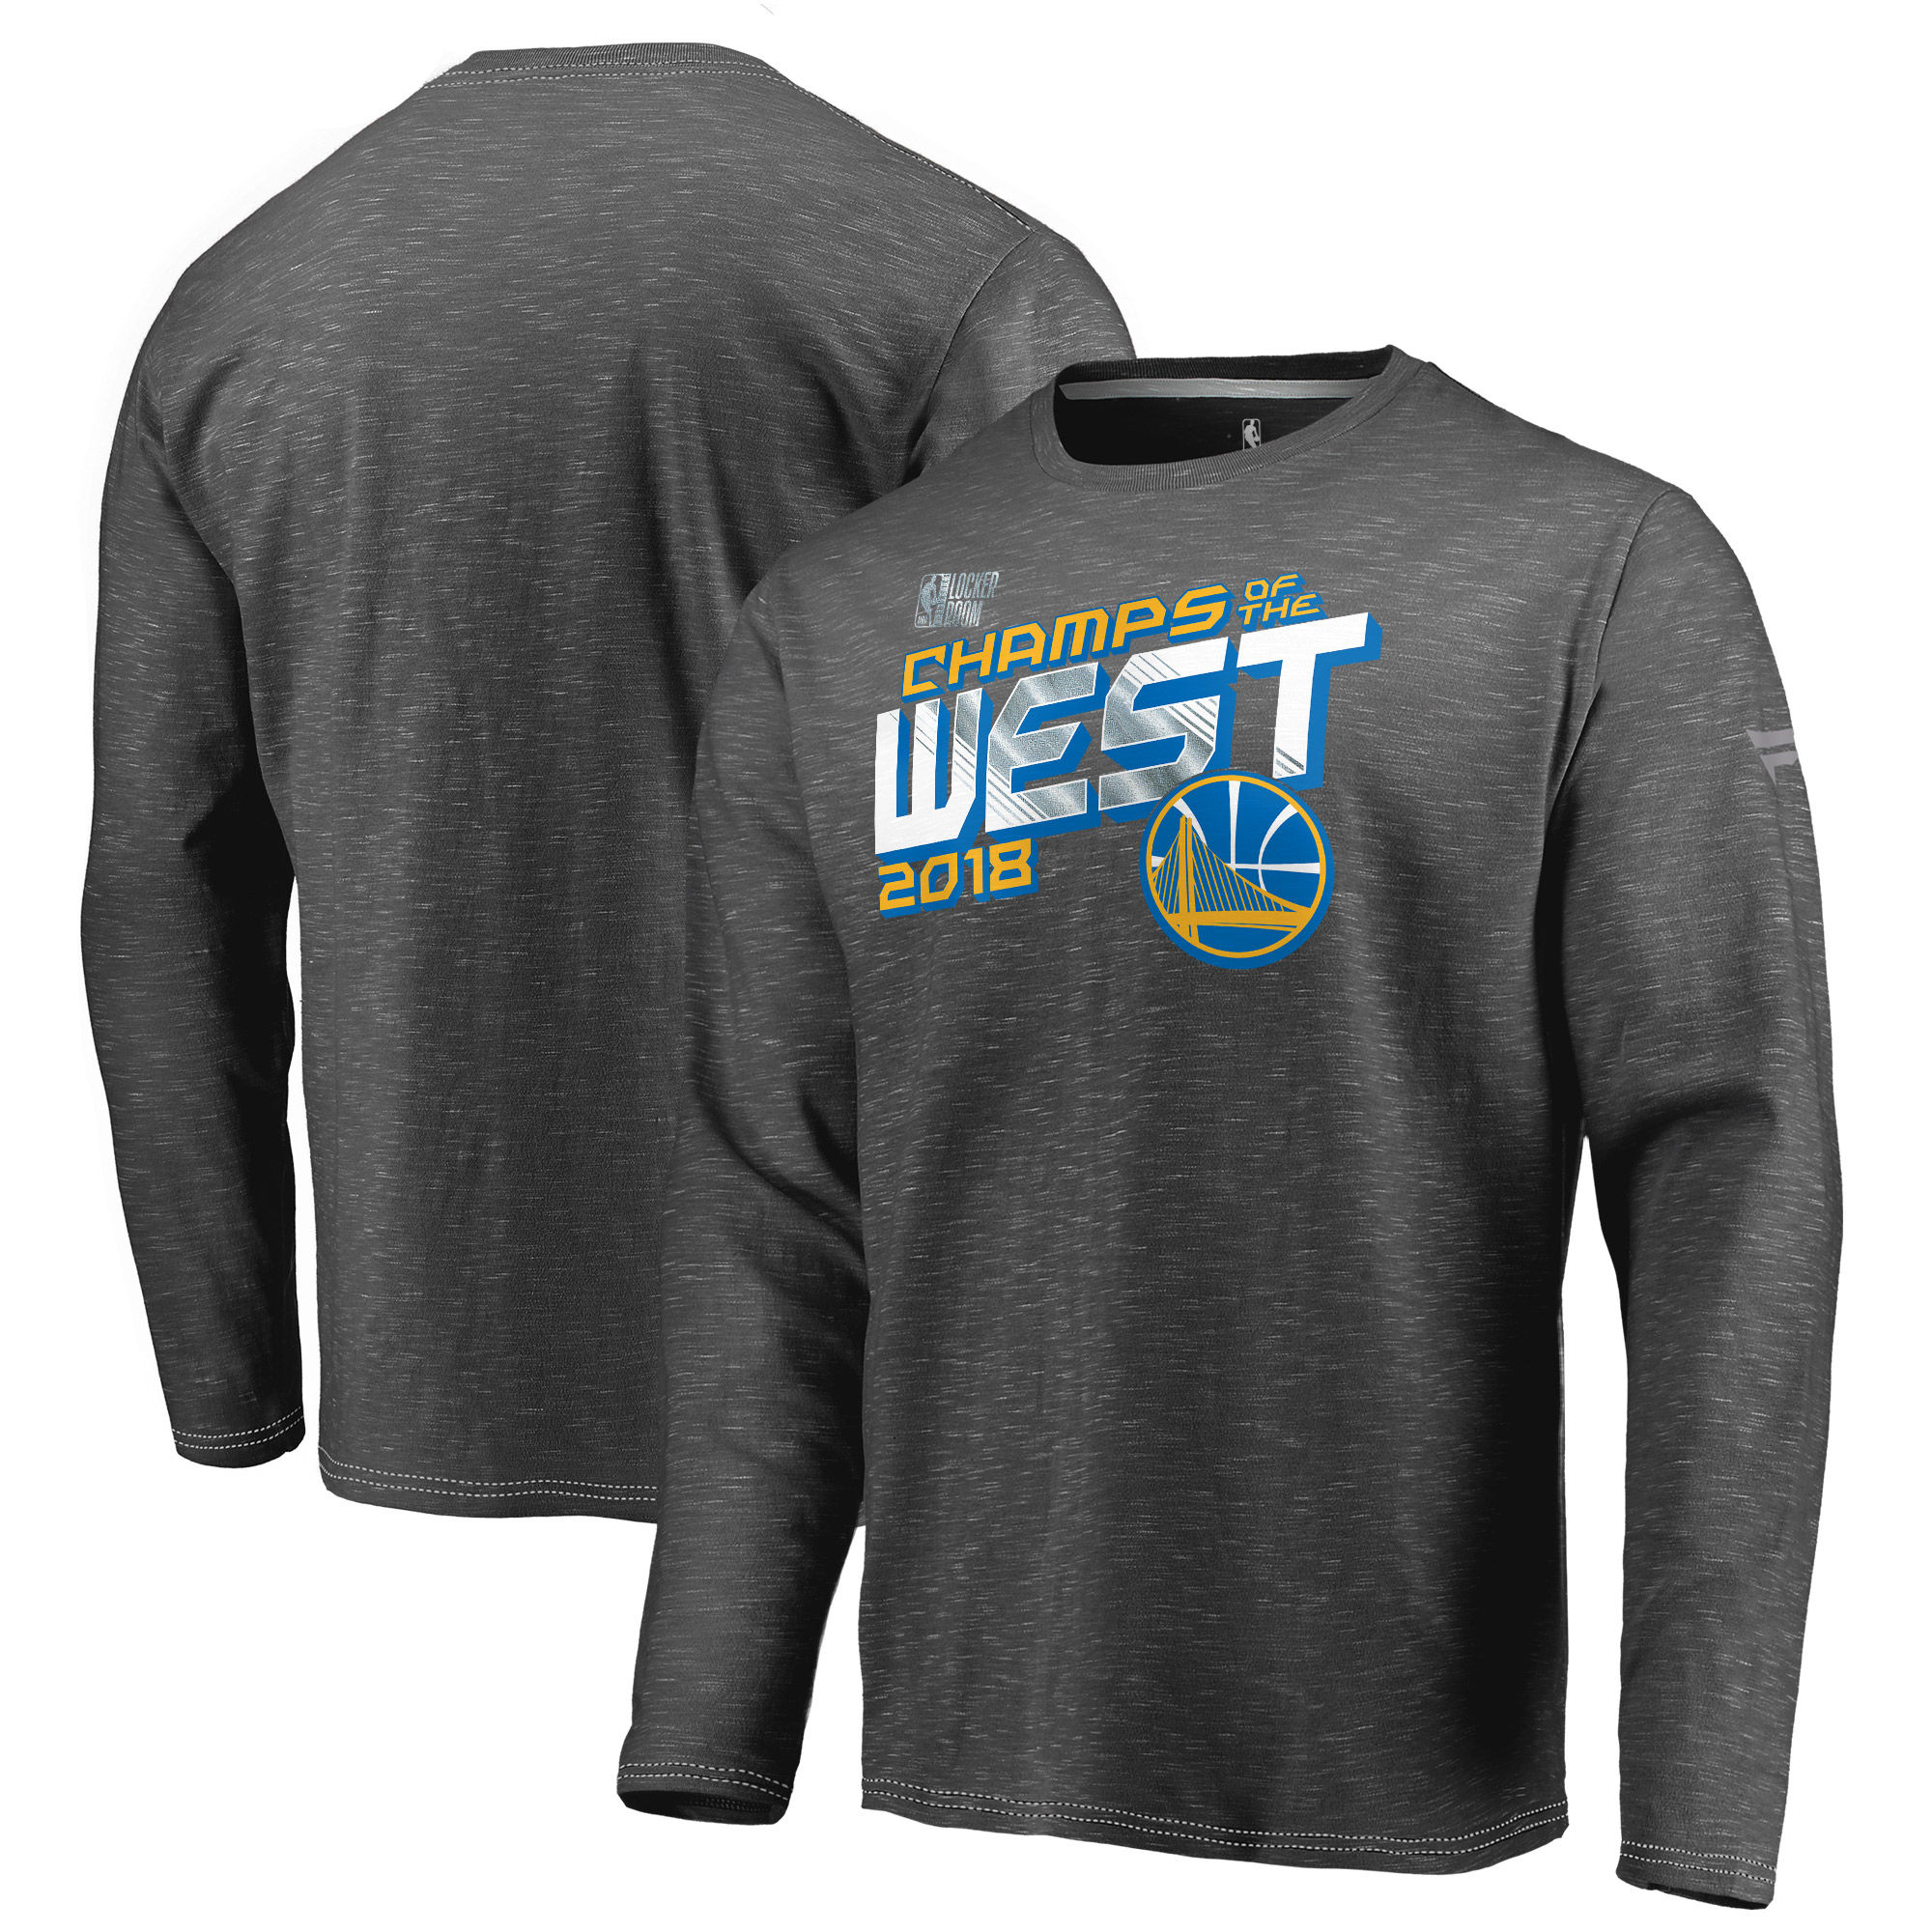 Golden State Warriors Fanatics Branded 2018 Western Conference Champions Locker Room Long Sleeve T-Shirt Heather Charcoal